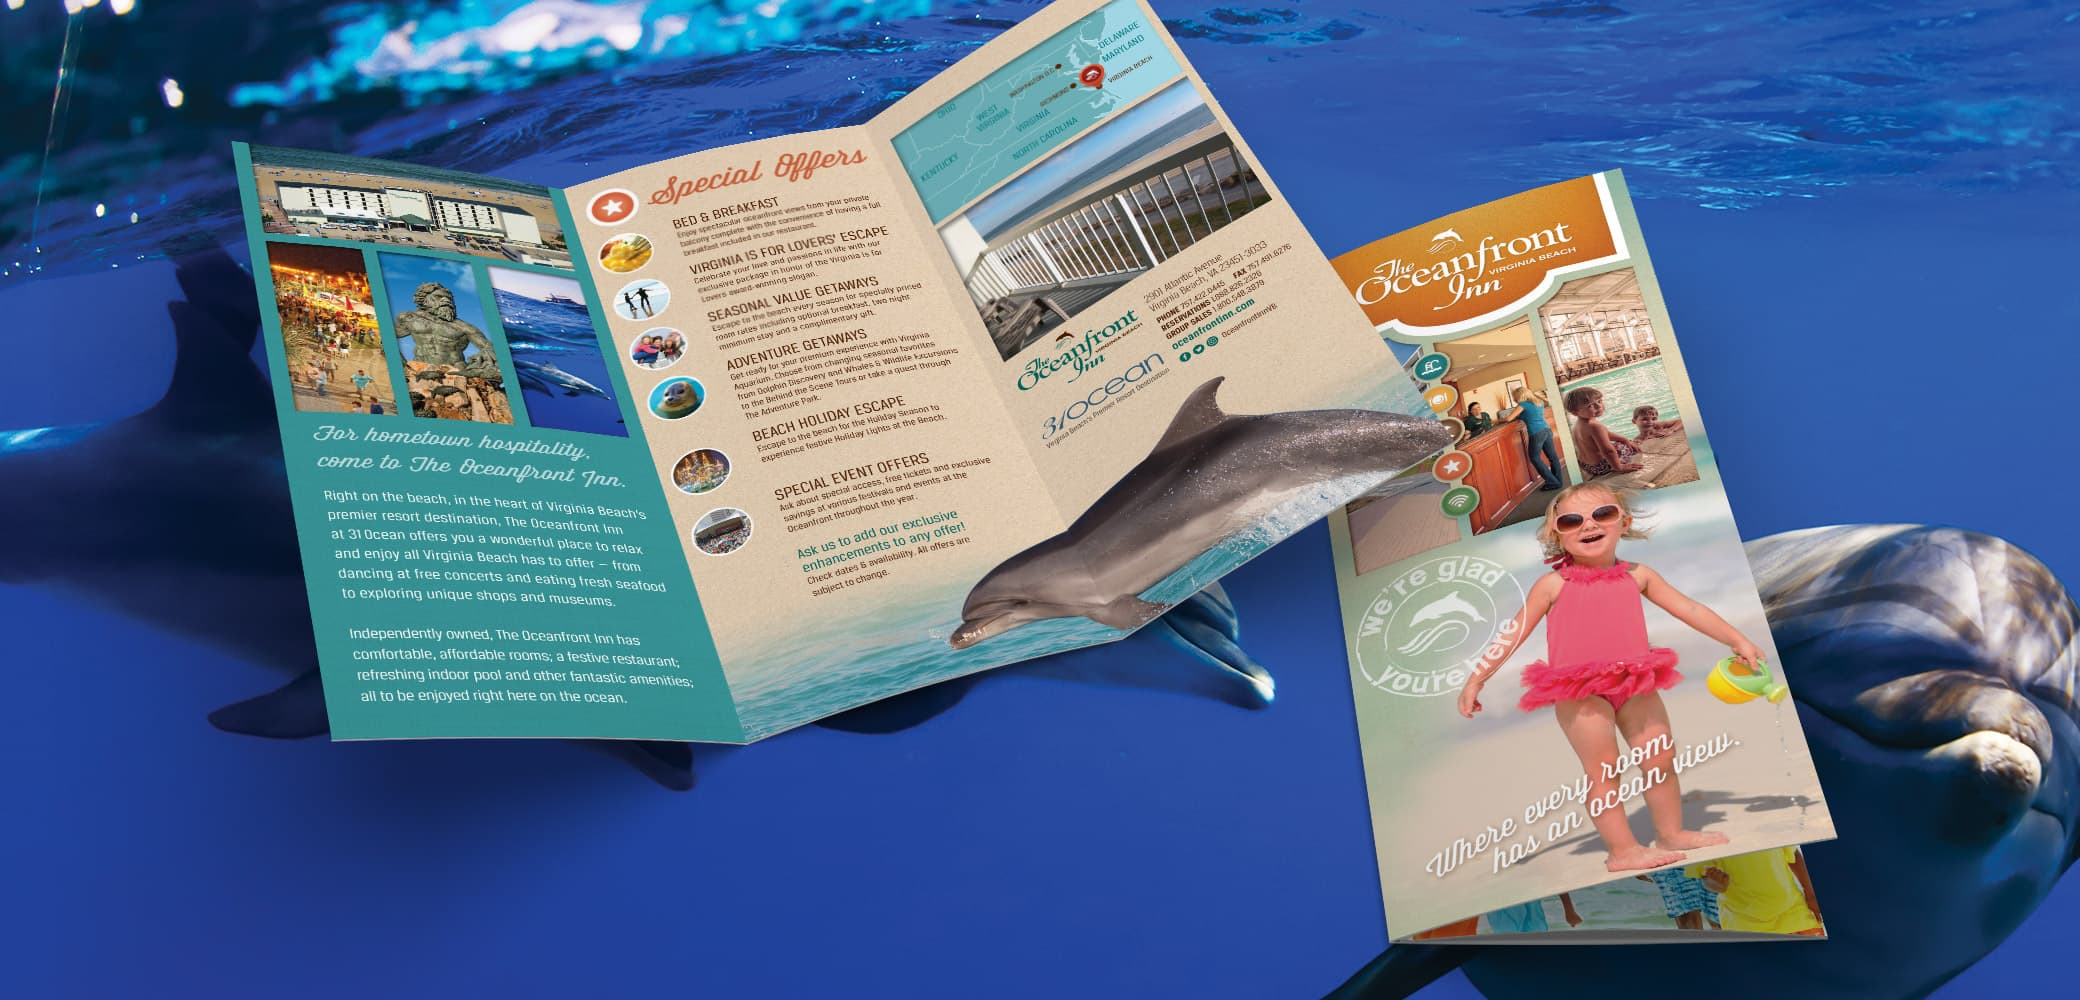 Oceanfront Inn Brochure Design by Red Chalk Studios